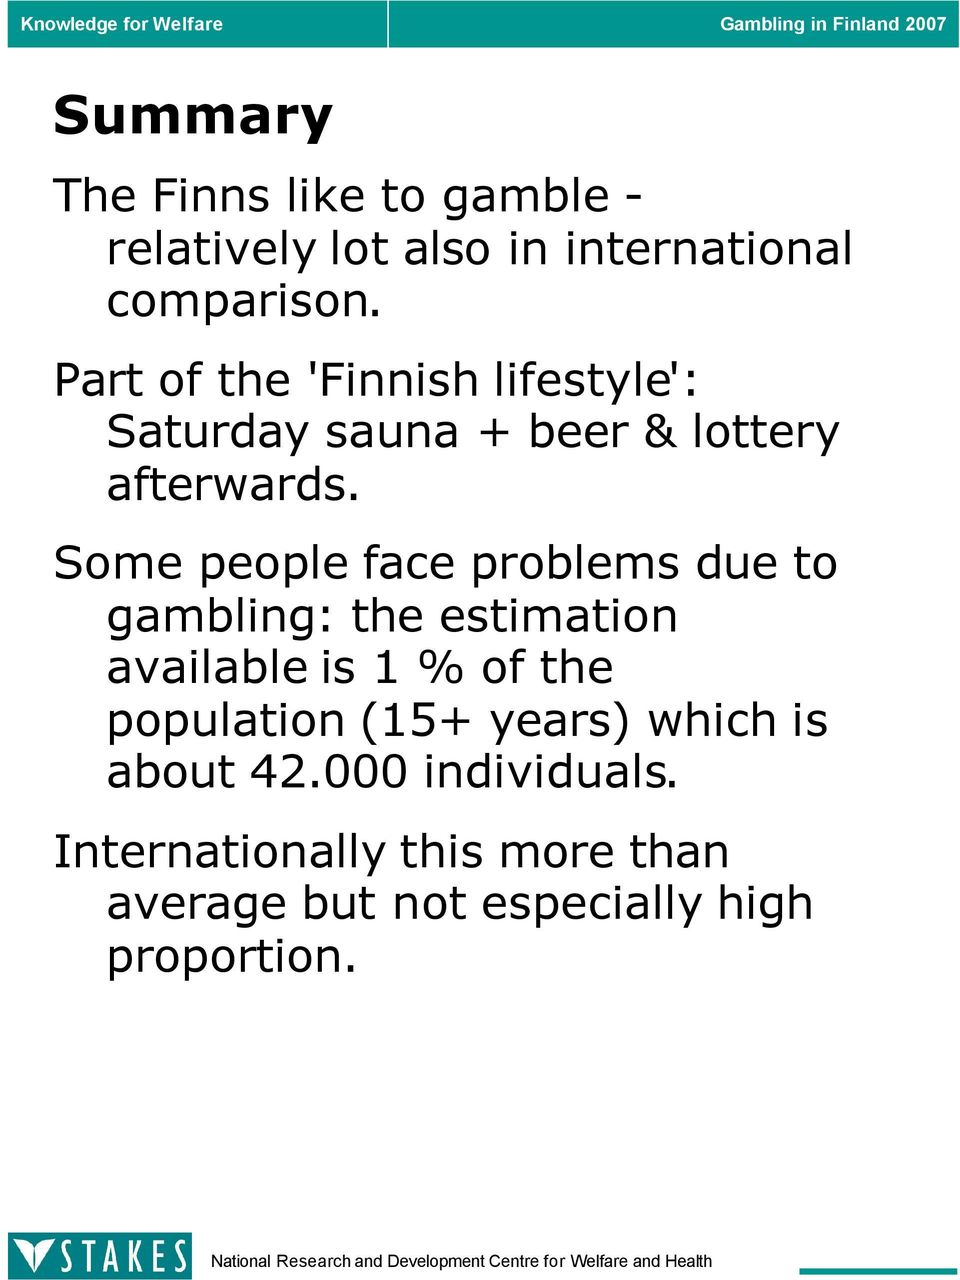 Some people face problems due to gambling: the estimation available is 1 % of the population